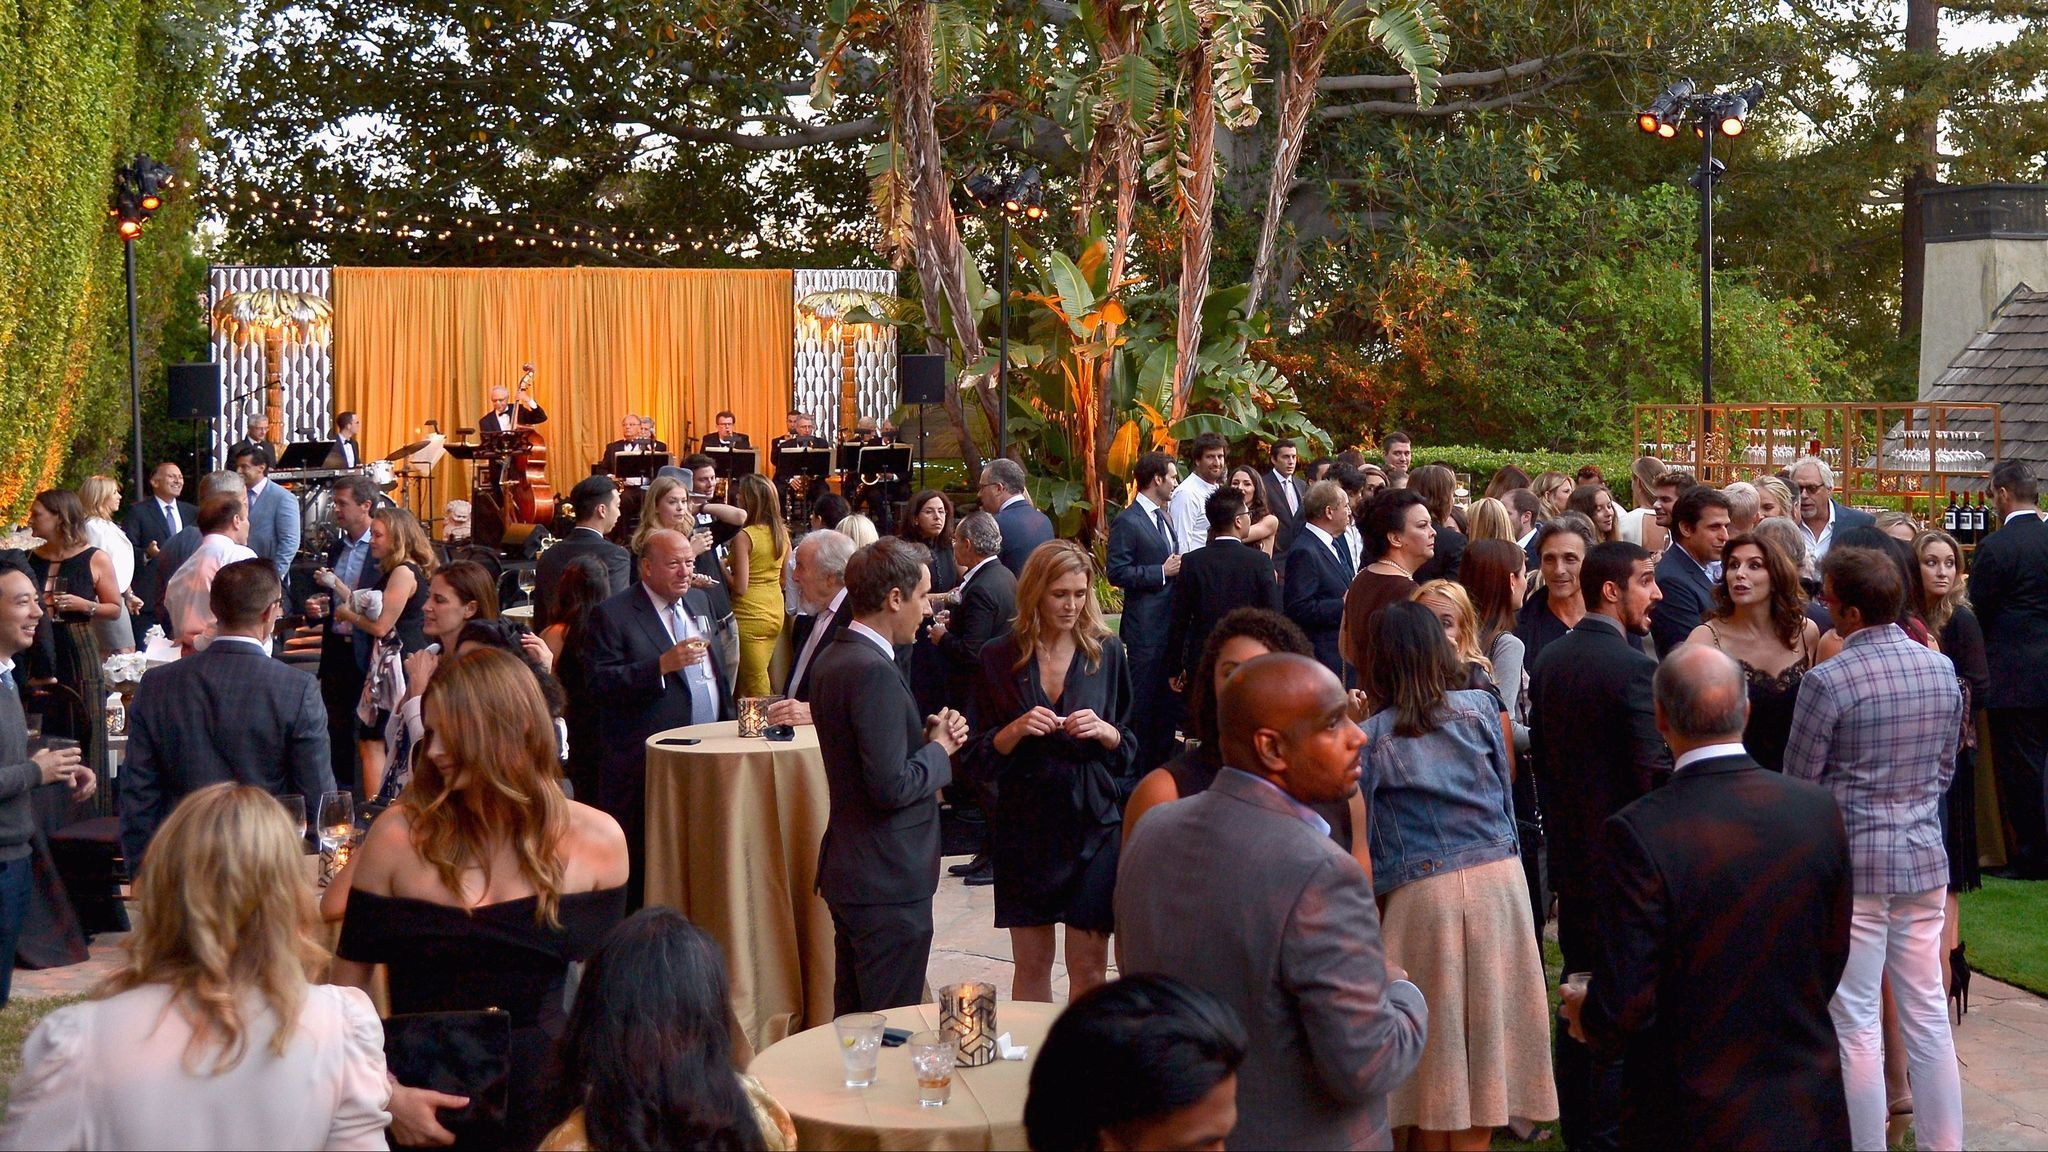 Guests attend an event for United Nations Secretary-General Ban Ki-moon co-hosted by Brett Ratner at his home, Hilhaven Lodge, in 2016.